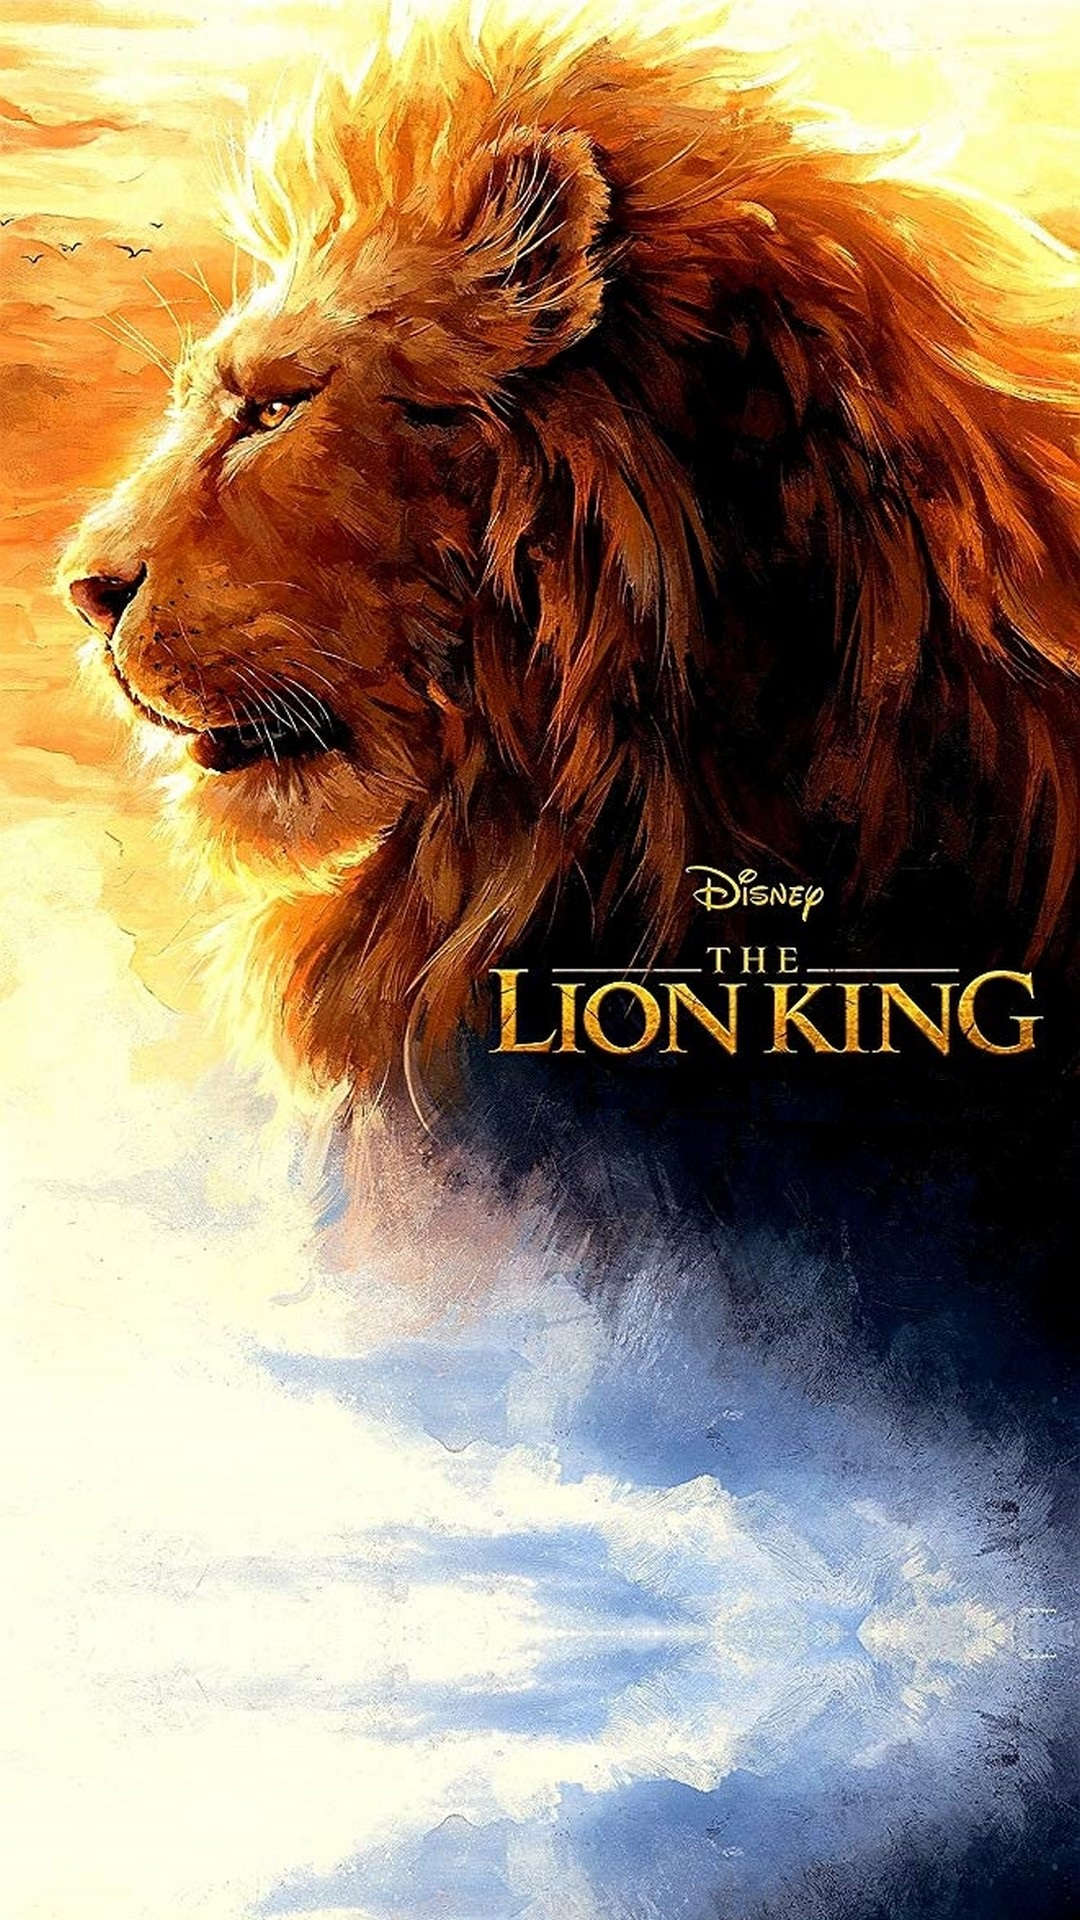 The Lion King 2019 Poster With High-resolution Pixel - Lion King Wallpaper 2019 , HD Wallpaper & Backgrounds